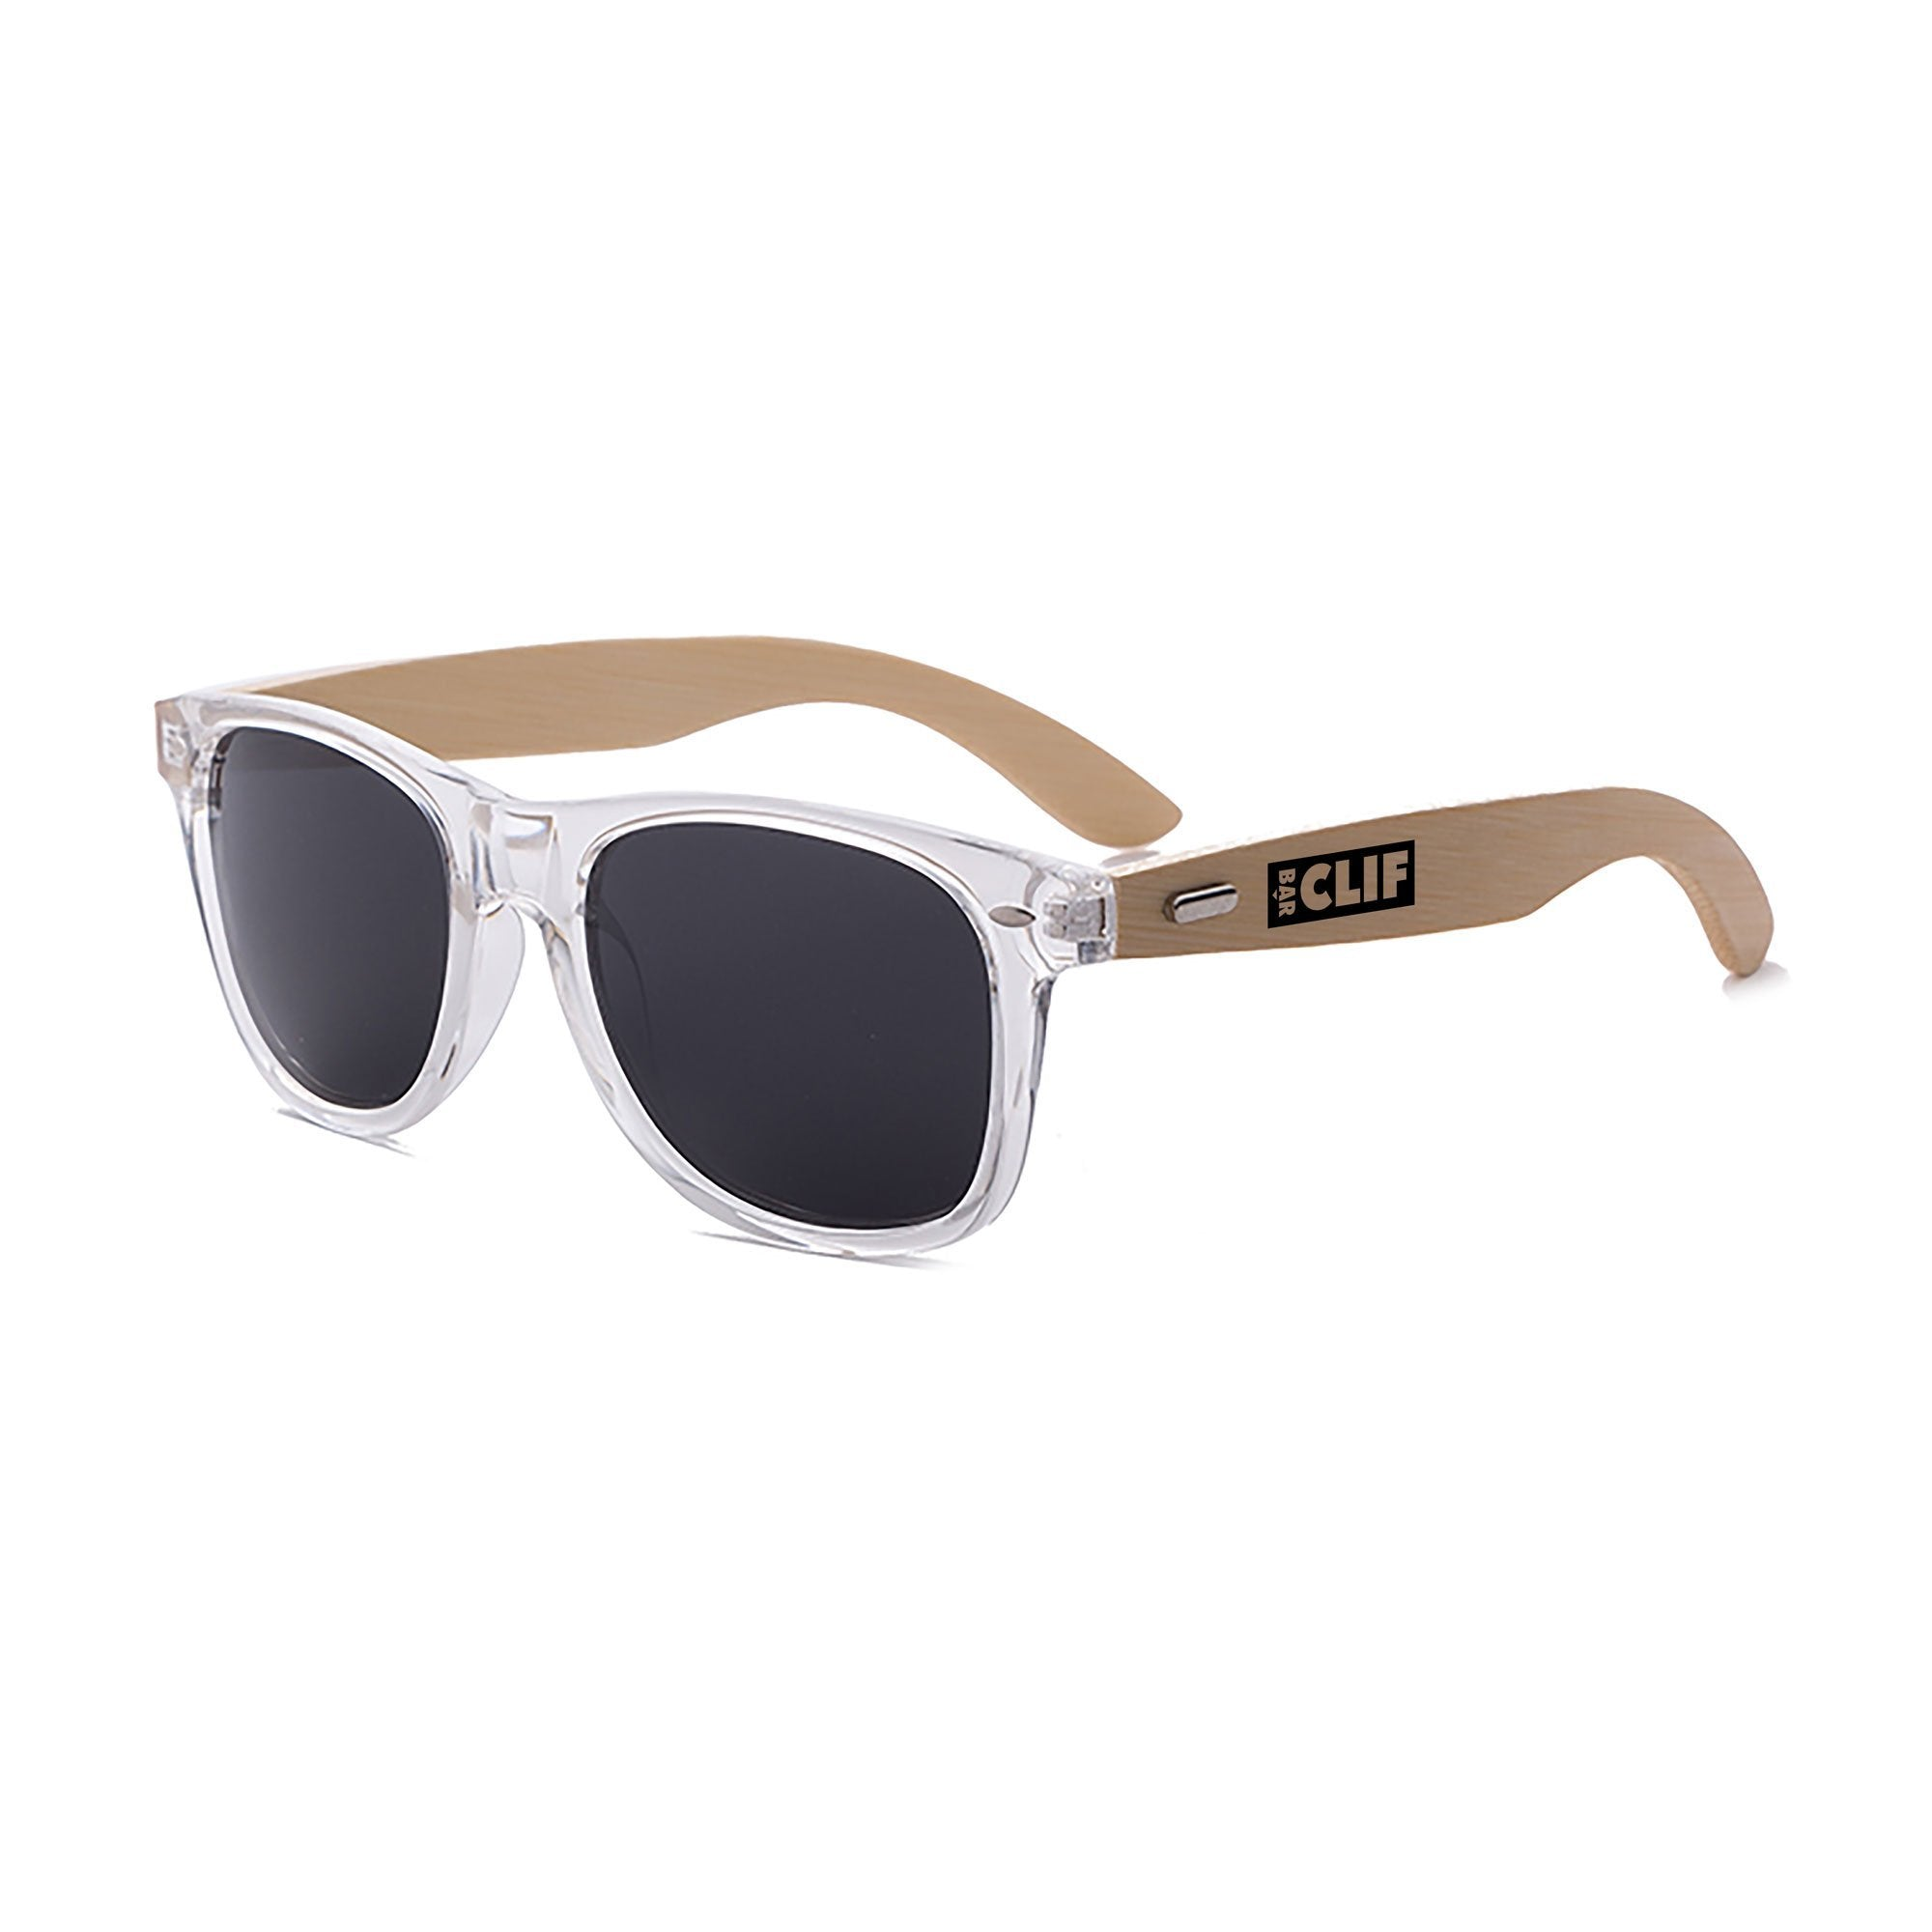 RD012-CBB Clear Bamboo 2-tone Retro Promotional Sunglasses